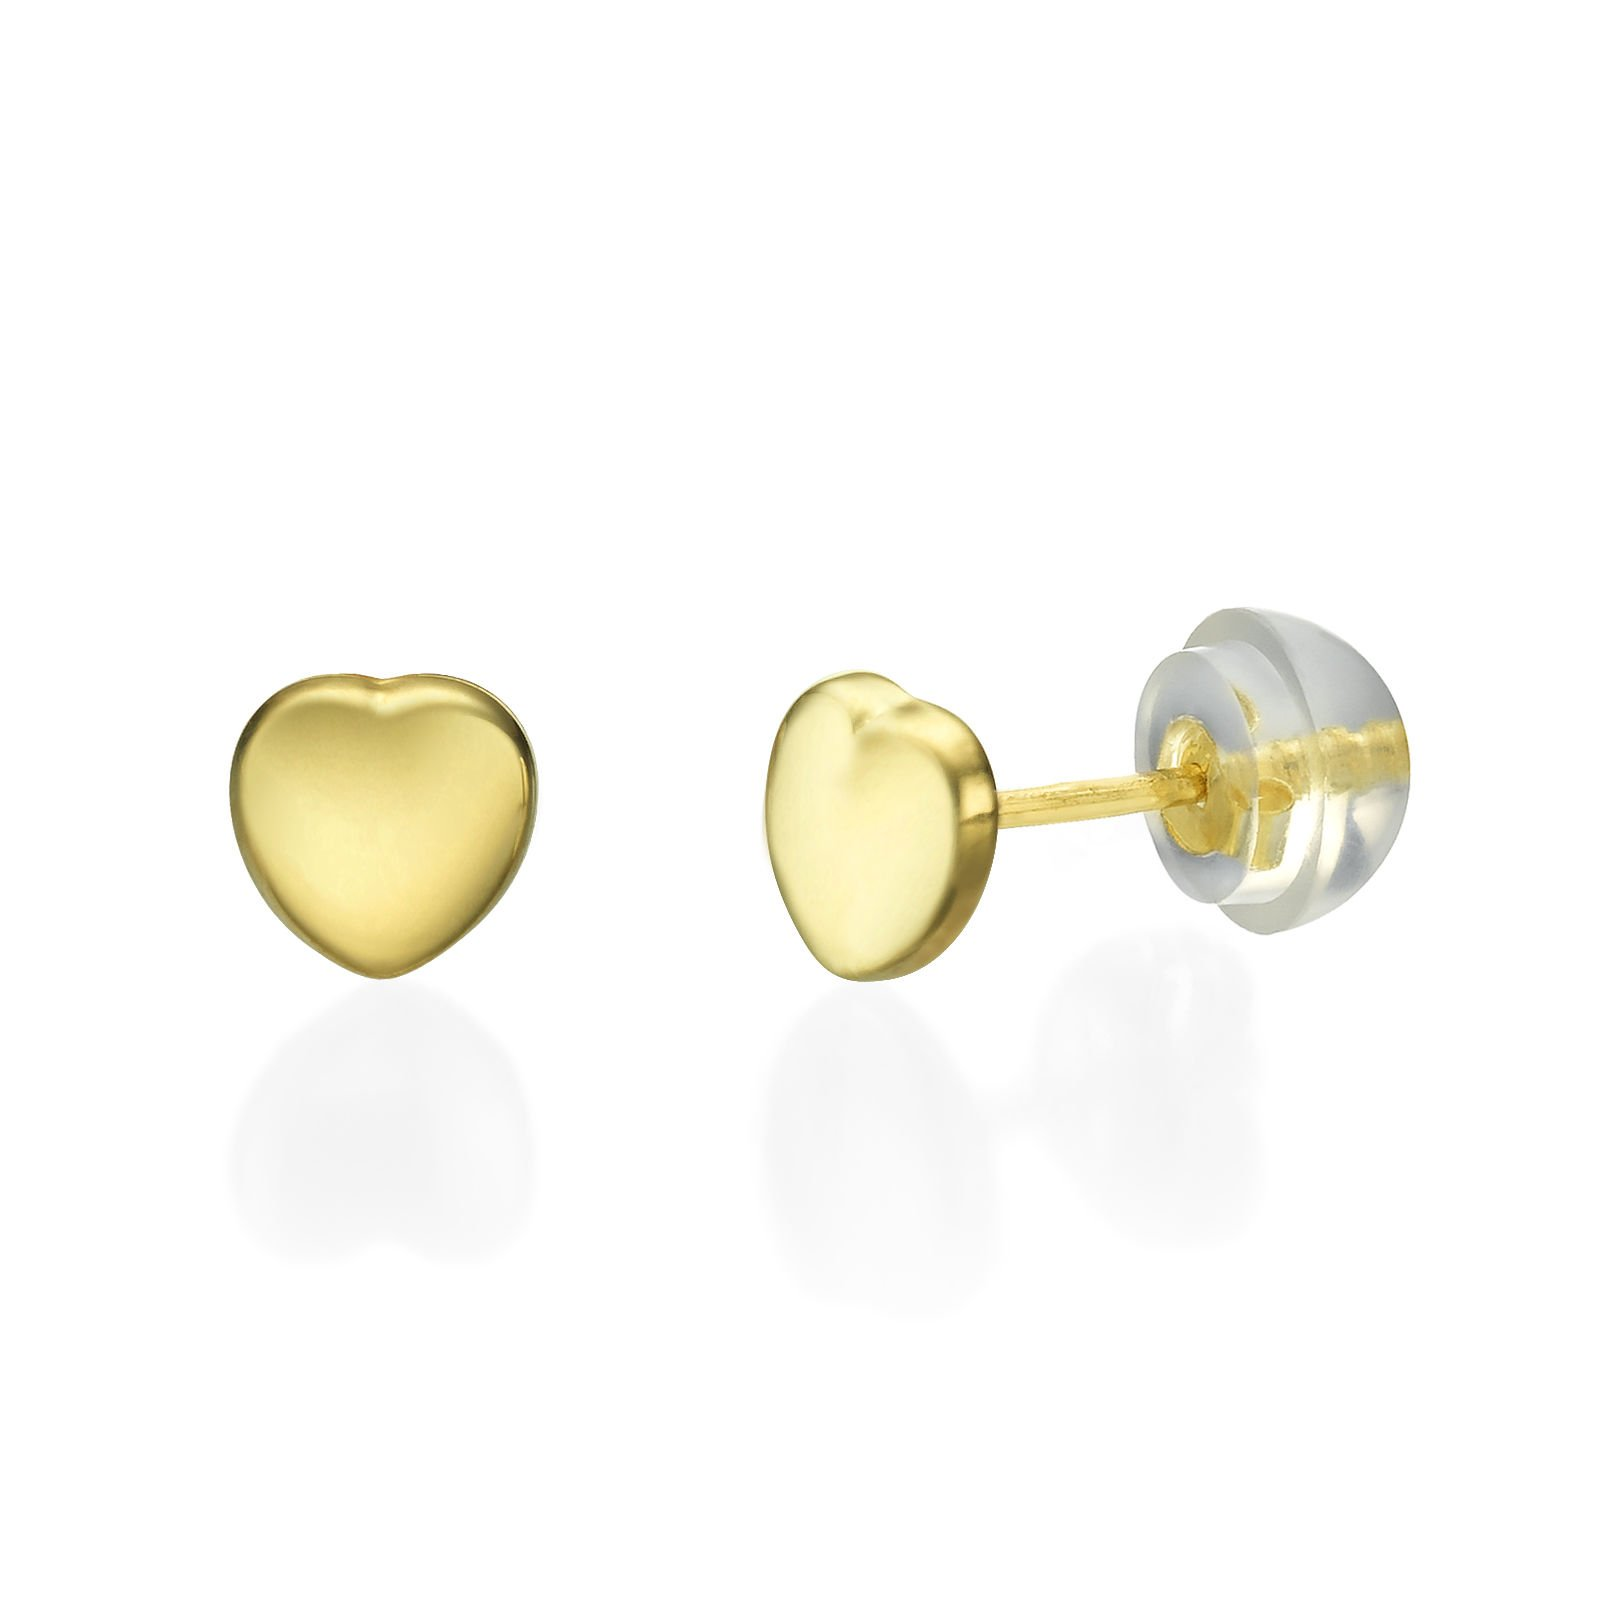 14K Fine Yellow Gold Heart Screw Back Stud Earrings for Girls Kids Children Gift